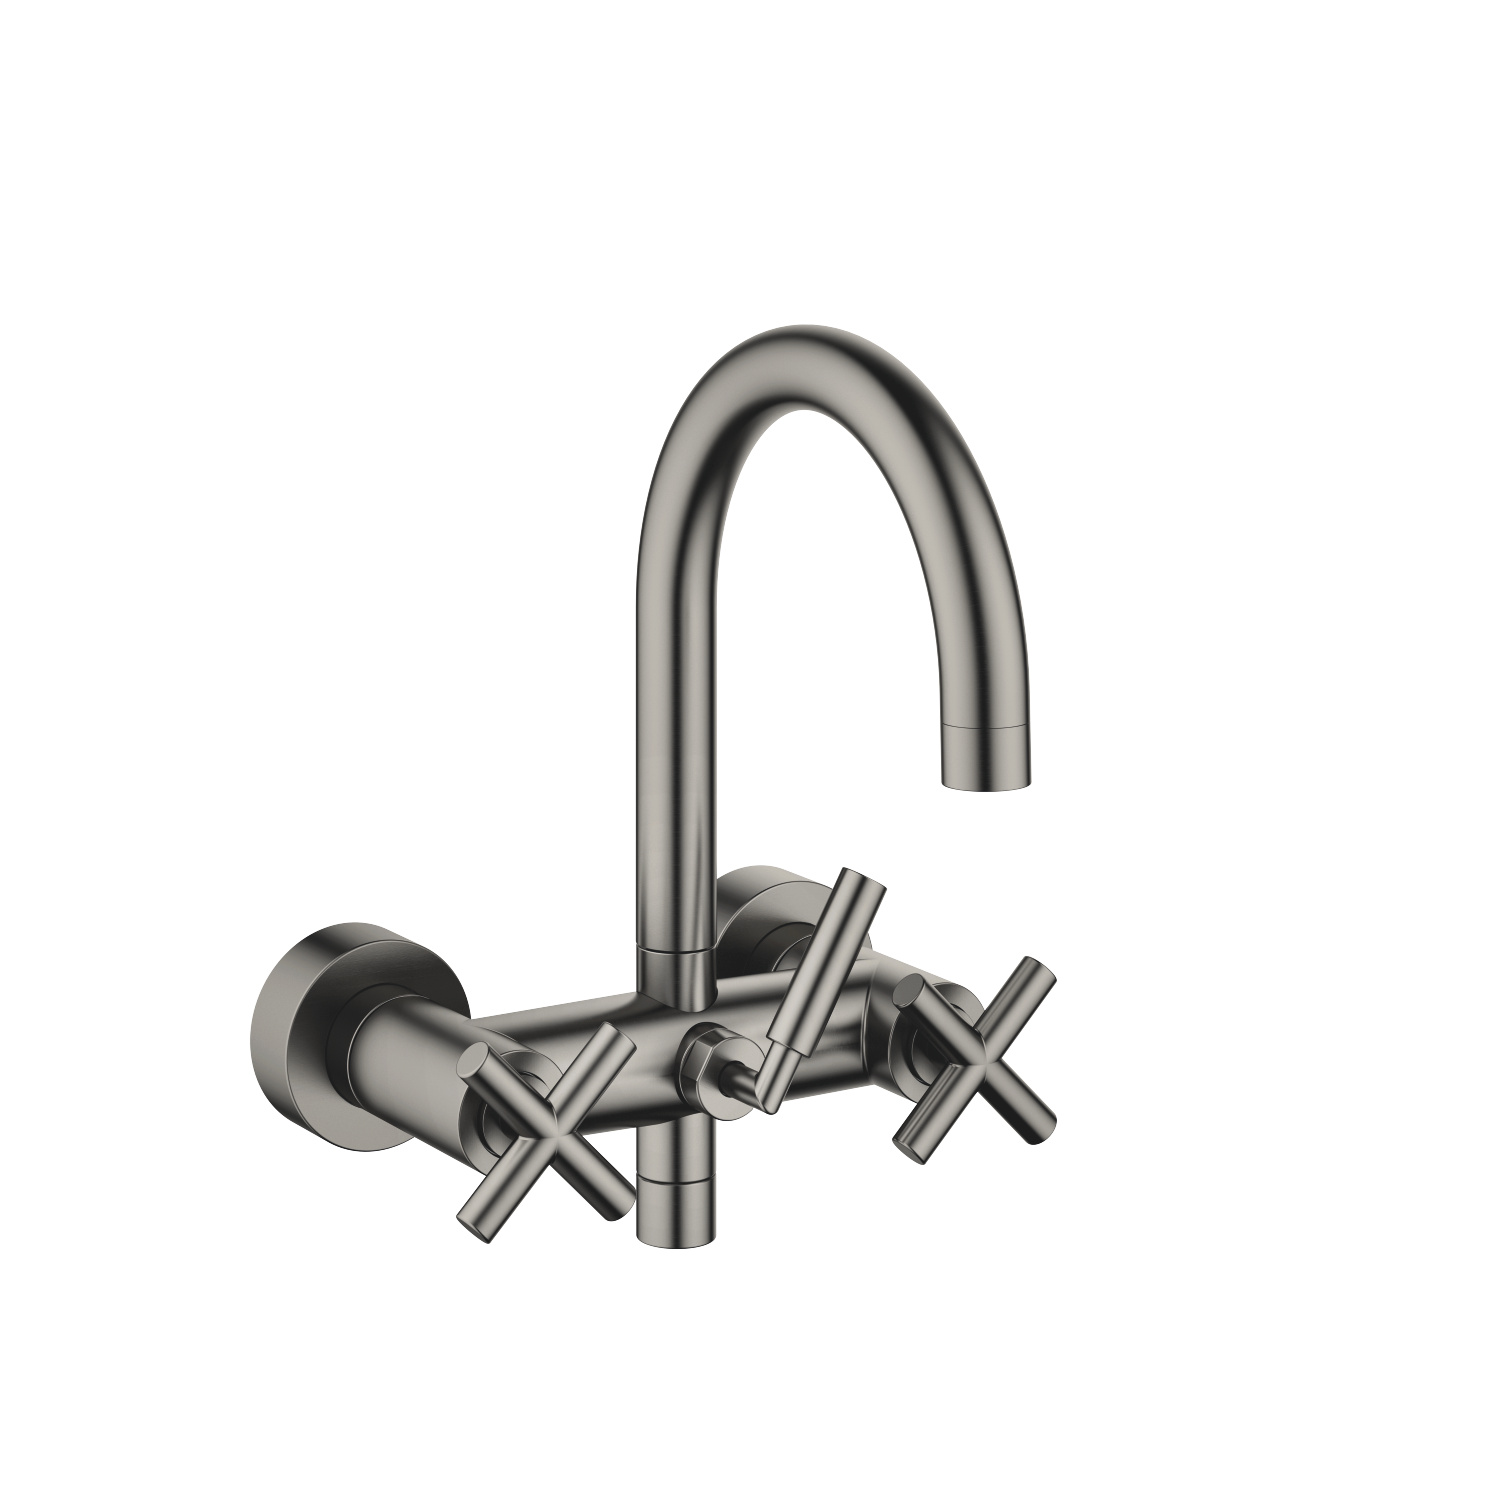 Tub mixer for wall-mounted installation - Dark Platinum matte